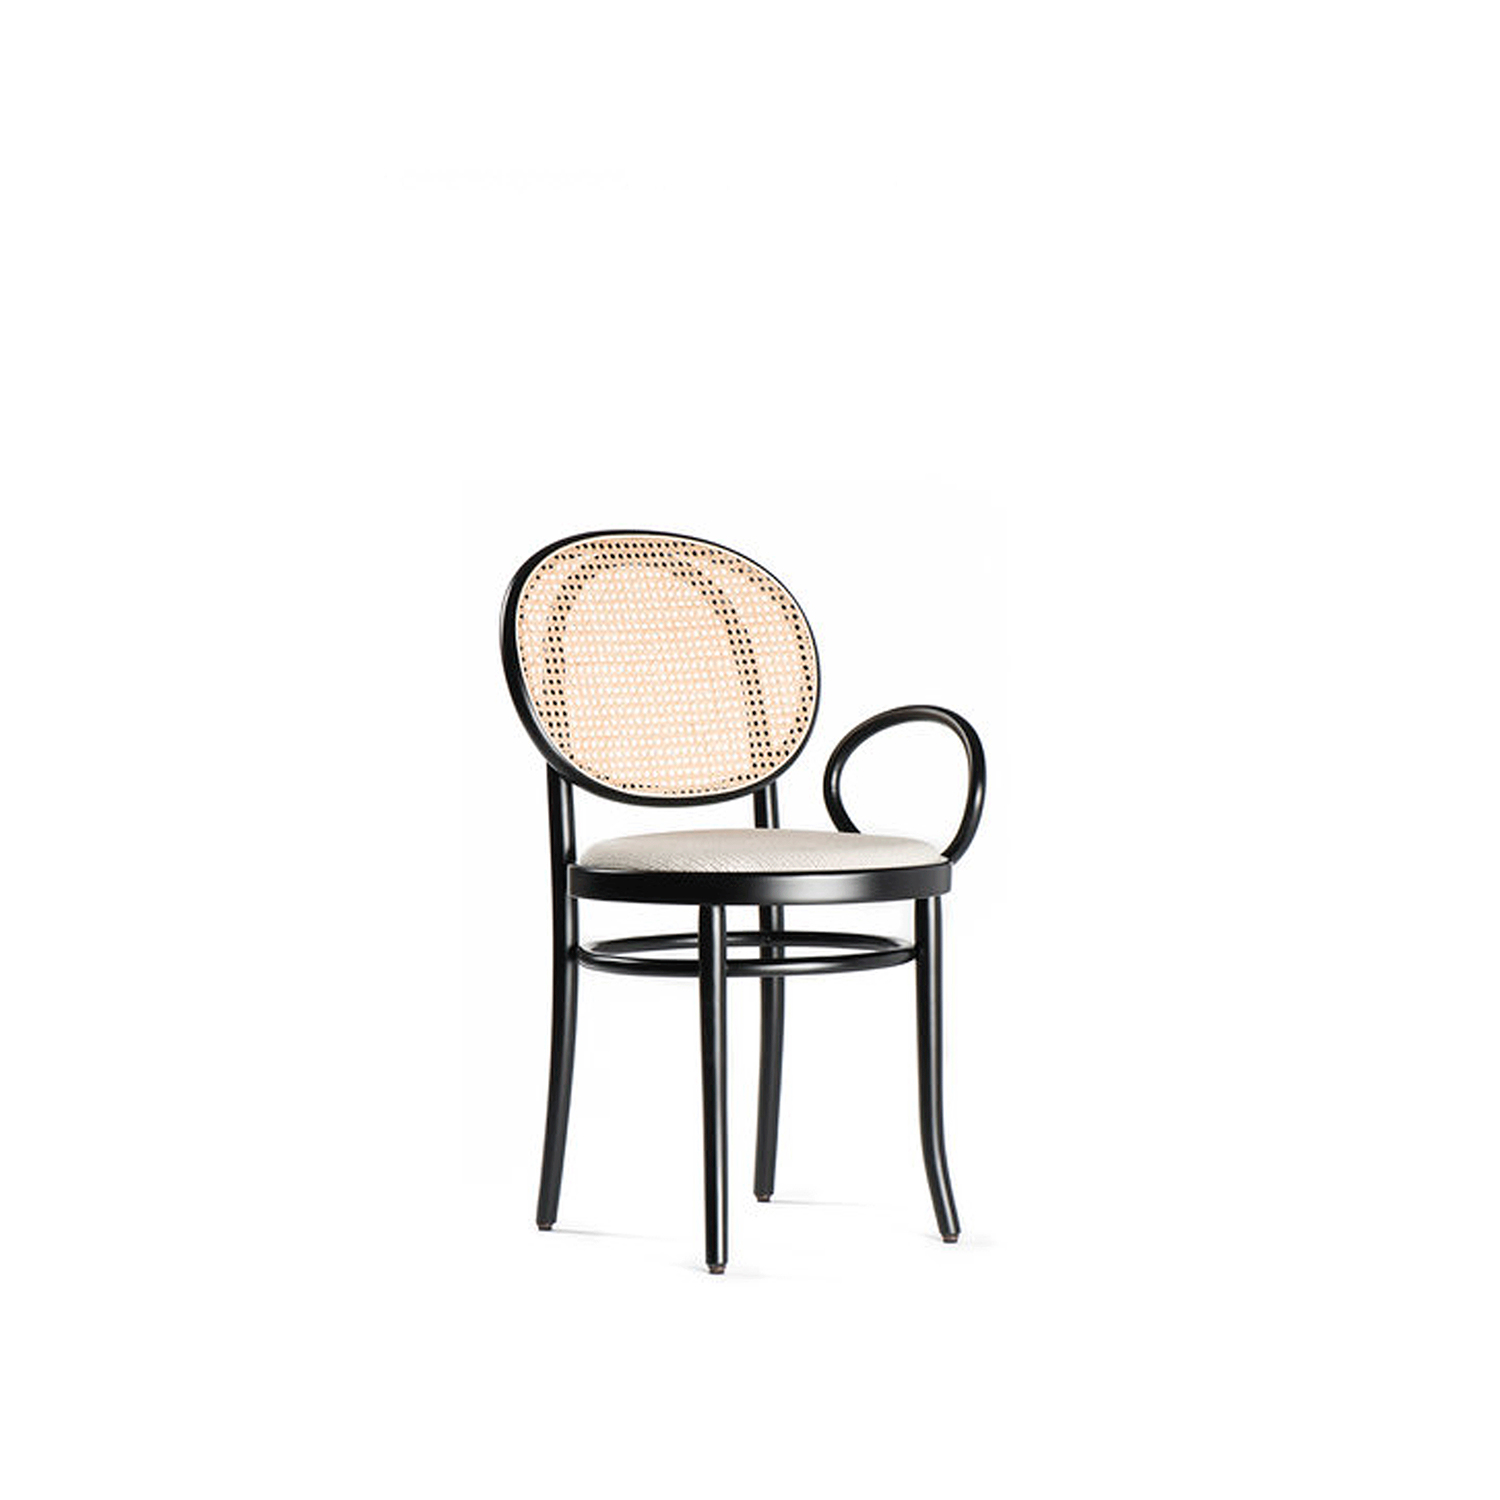 No. 0 Black And White Chair - Combining the contemporary and playful aesthetic of the Swedish duo with the century-old tradition of Viennese furniture, this armchair boasts a steam-bent beechwood frame finished with black lacquer that features a single round armrest on one side. The frame envelops the round seat with white fabric upholstery and the backrest with stunning Viennese straw.  | Matter of Stuff